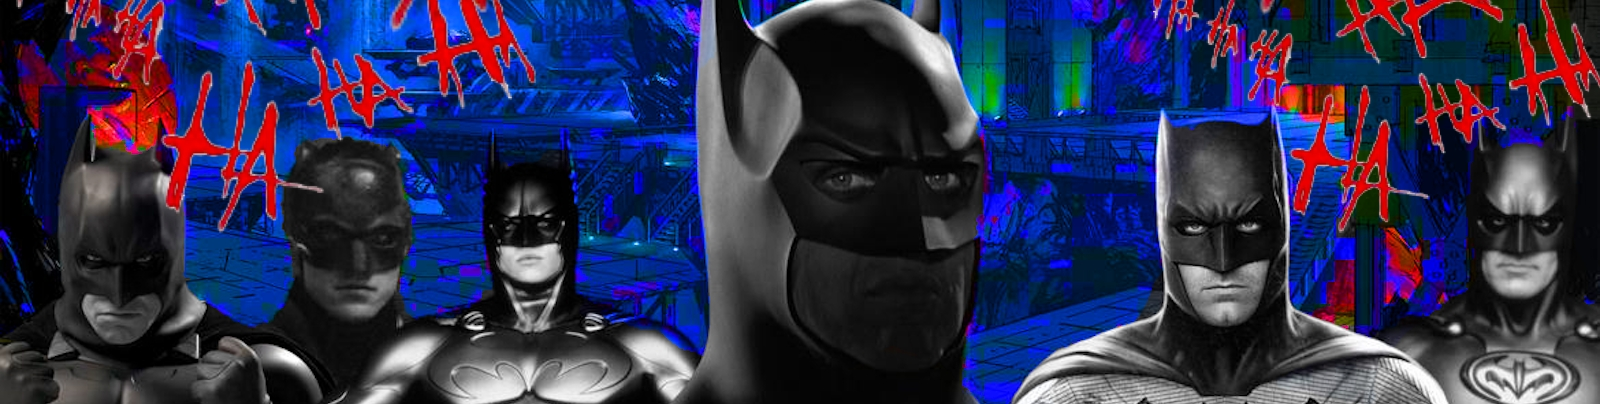 Ranking The Batmans Based On How Insane They Are